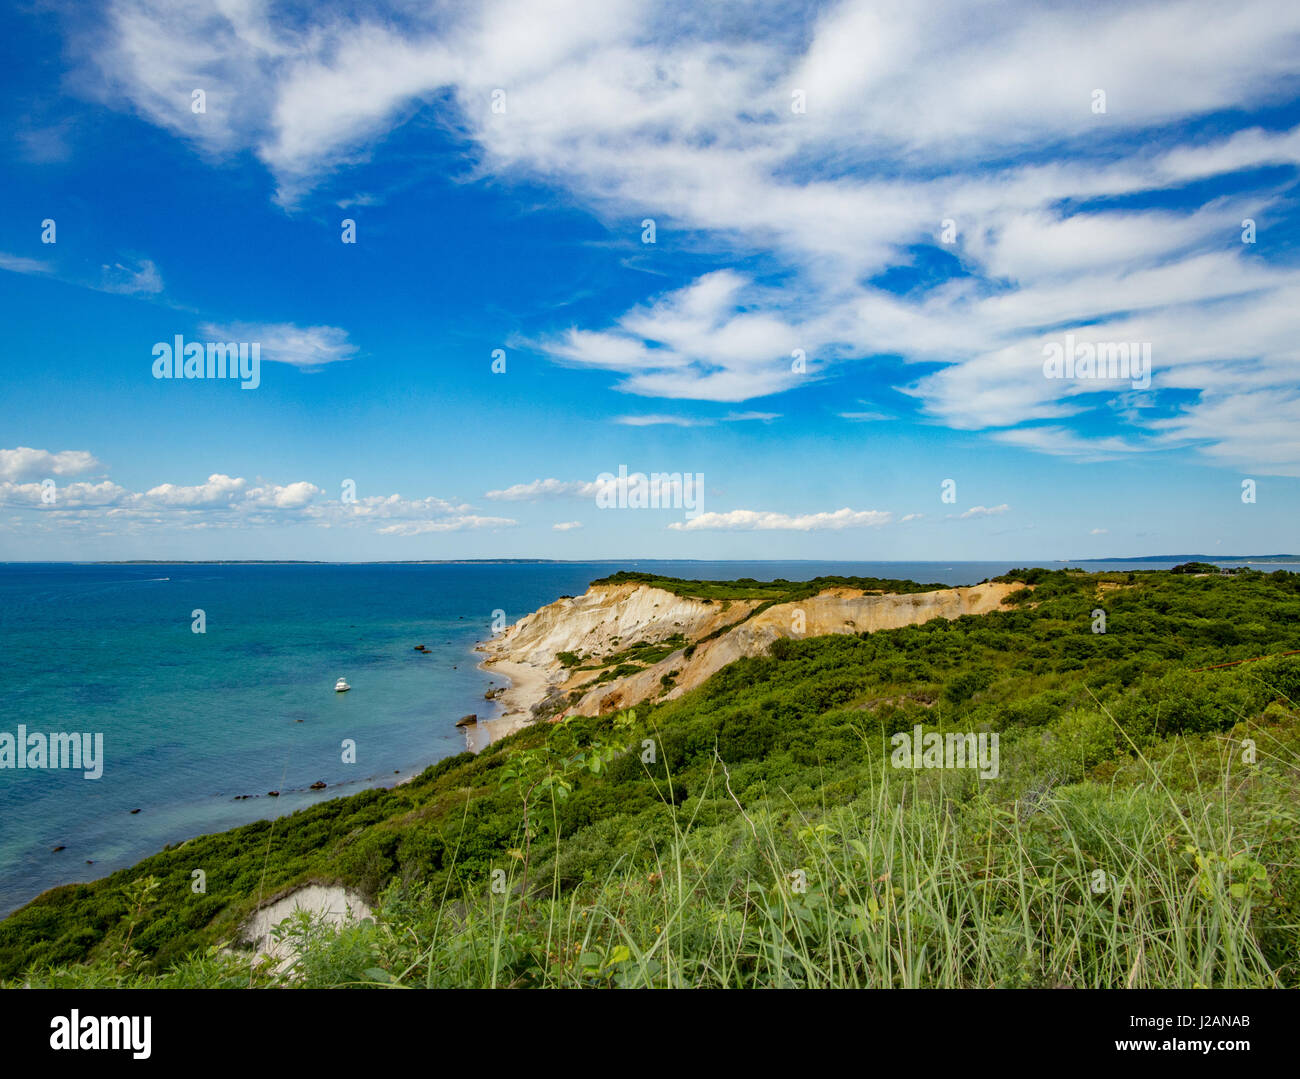 The coast of Martha's Vineyard featuring its beach side cliffs - Stock Image